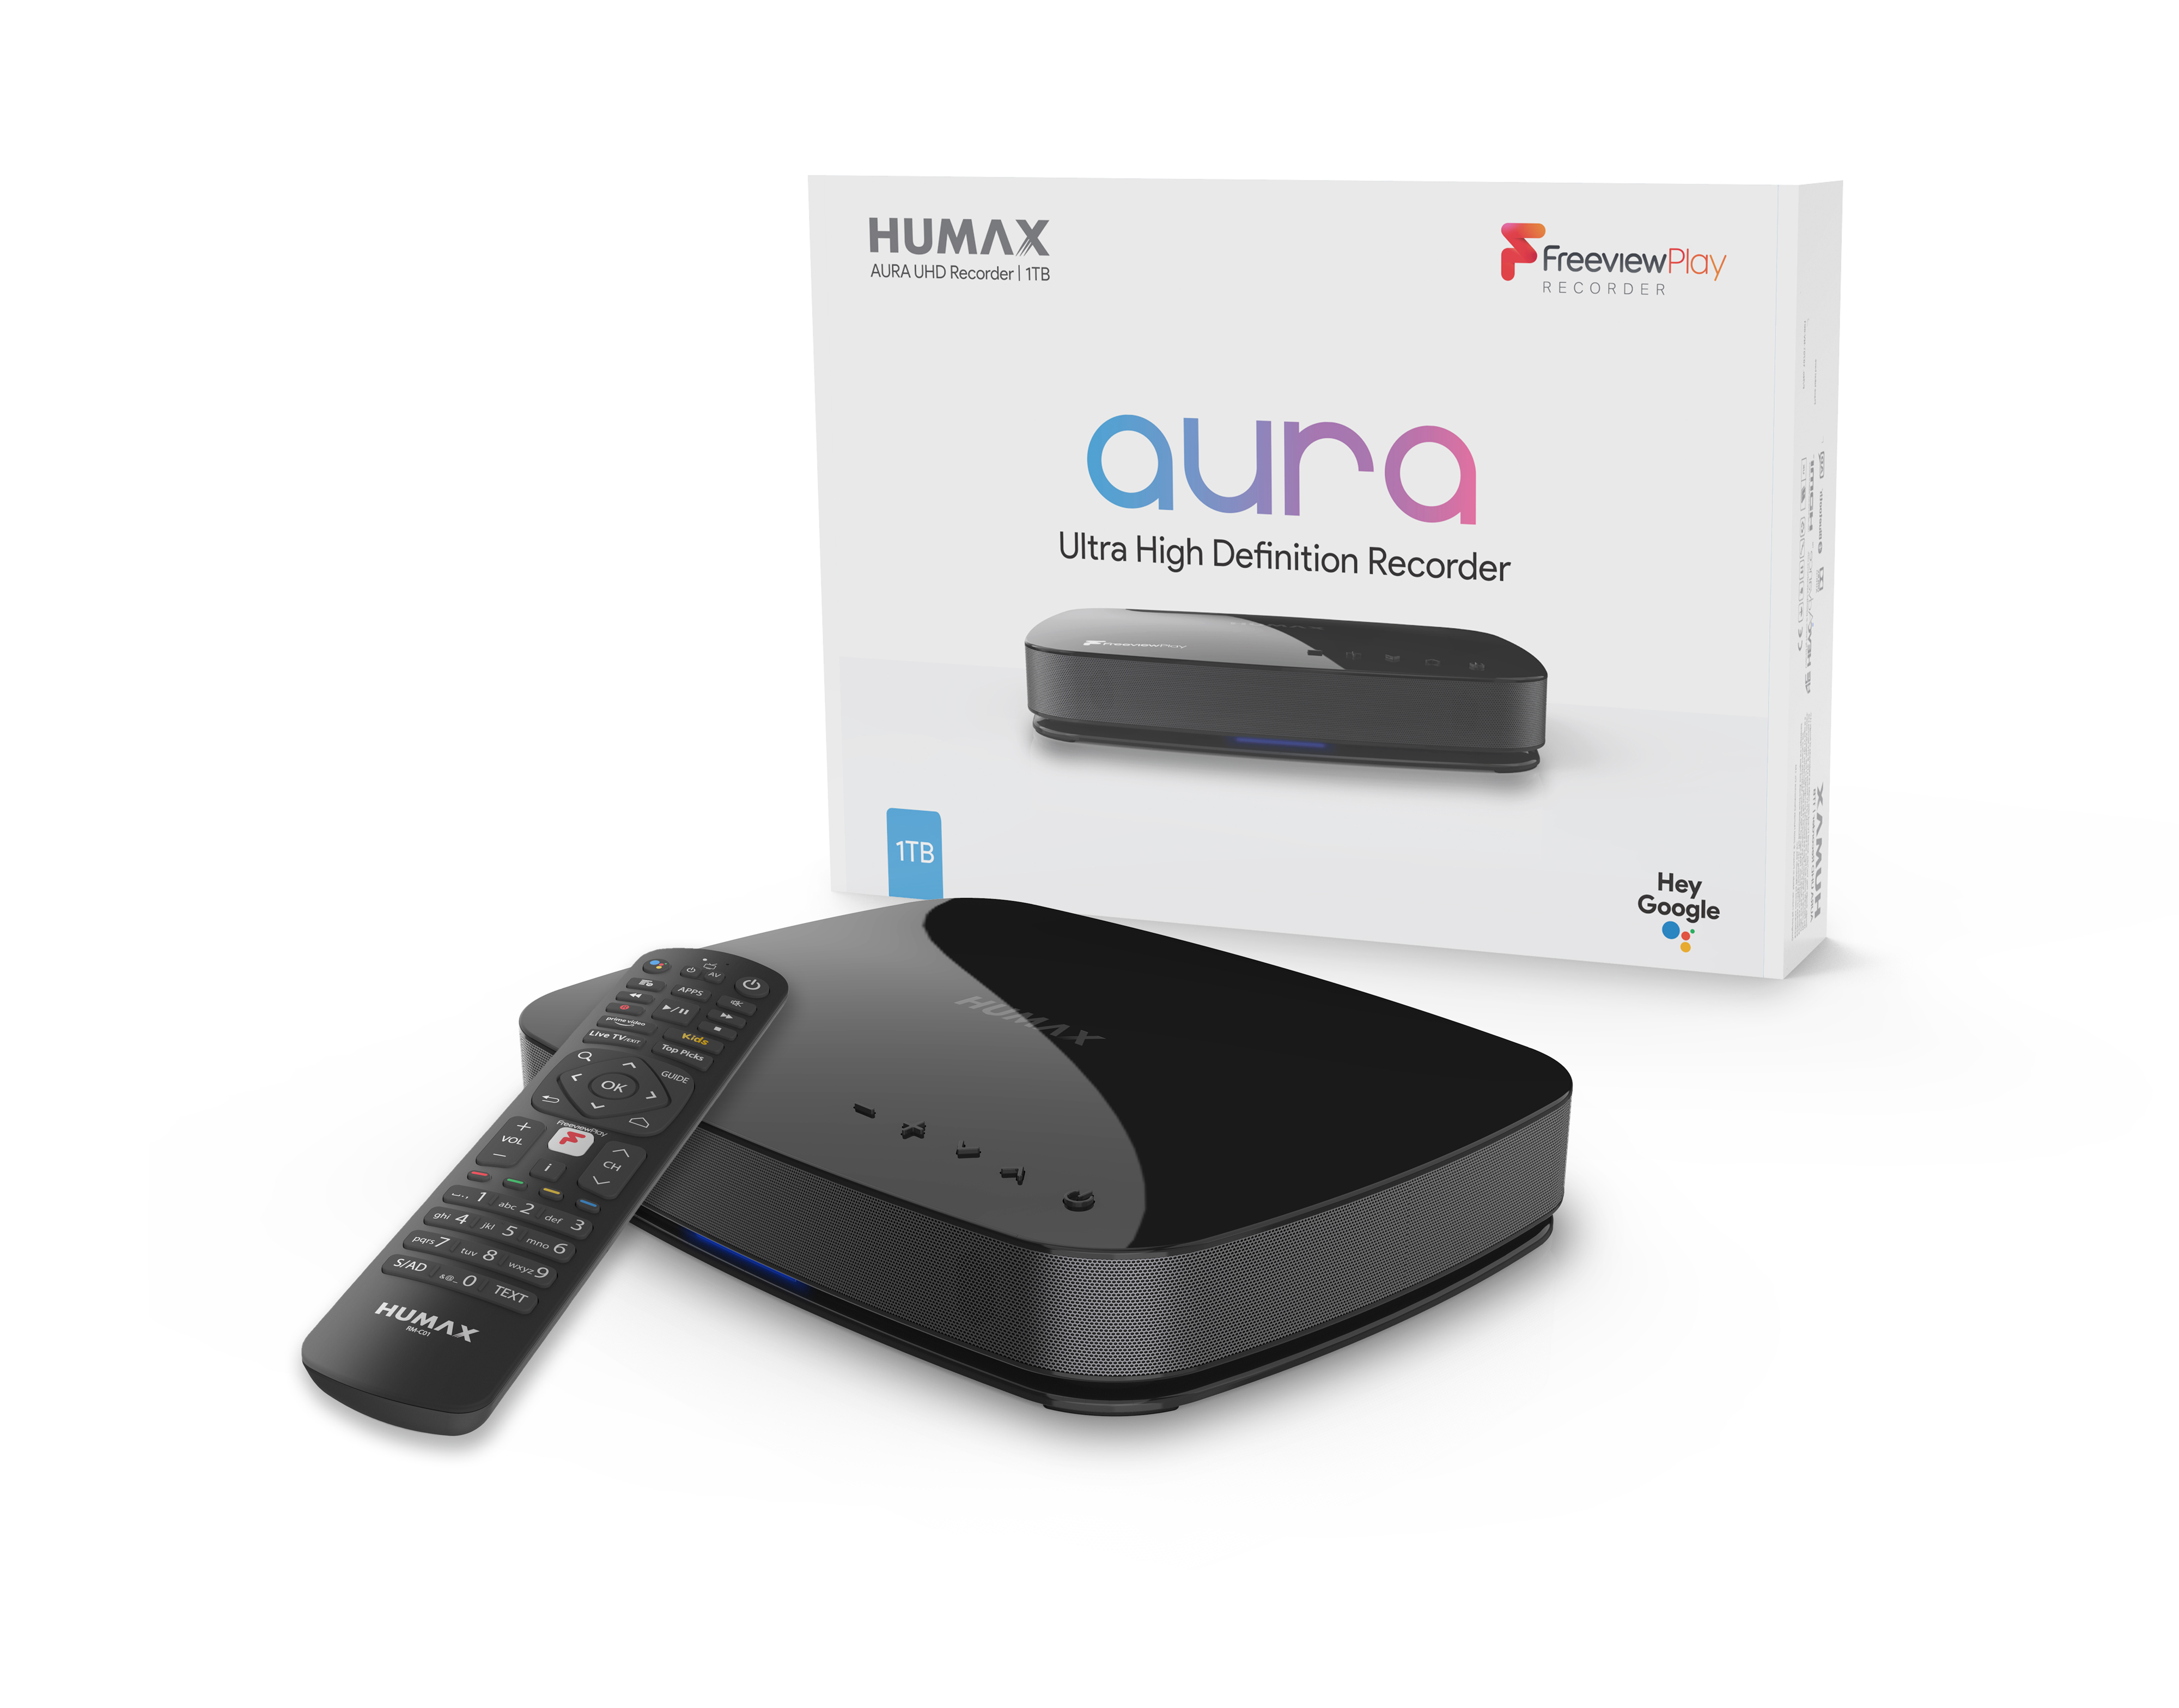 """<a href=""""https://ierawards.co.uk/humax-aura-4k-freeview-play-recorder-powered-by-android-tv/"""" target=""""_blank"""">AURA 4K Freeview Play Recorder powered by Android TV<br><b>Humax</b></a>"""